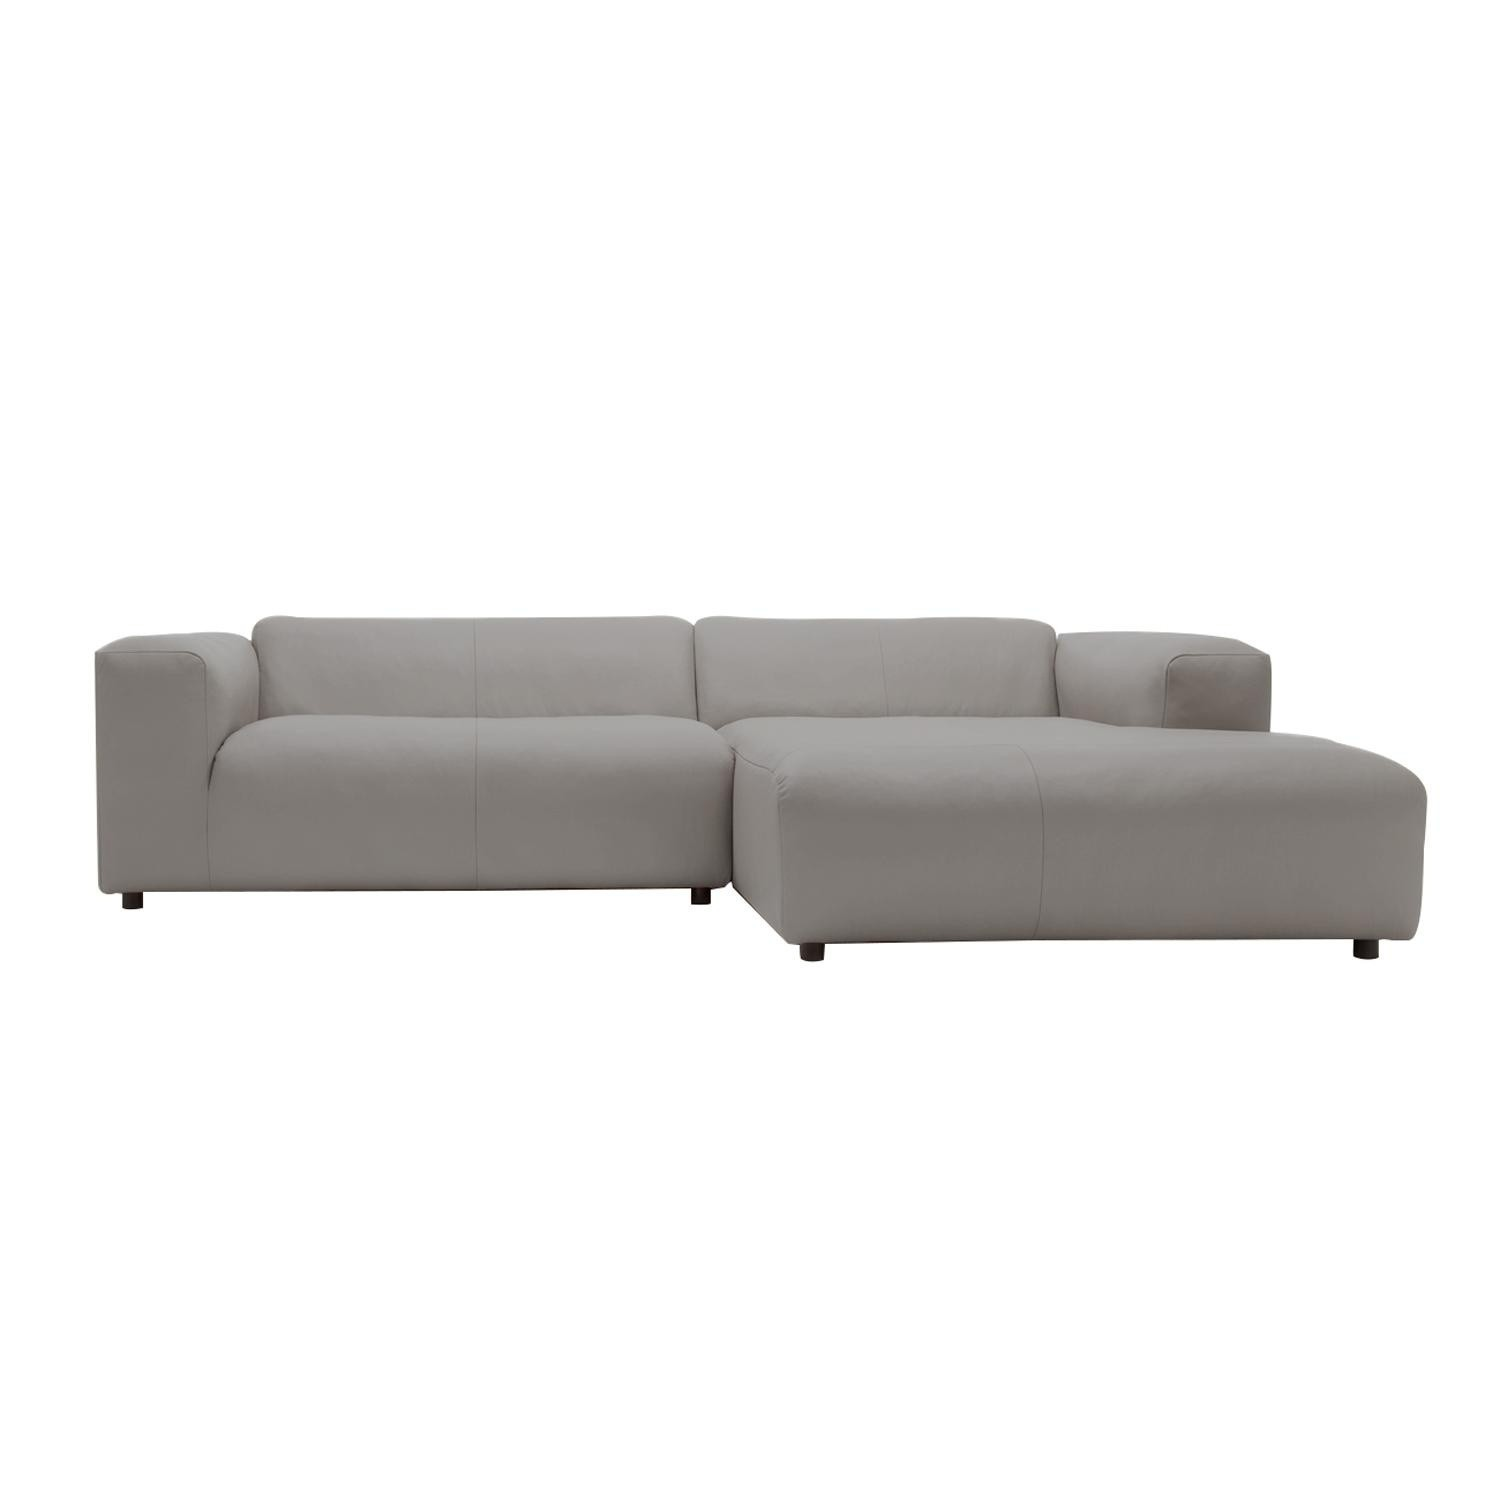 Bettsofa Rolf Benz Freistil 187 Lounge Sofa 260x185cm